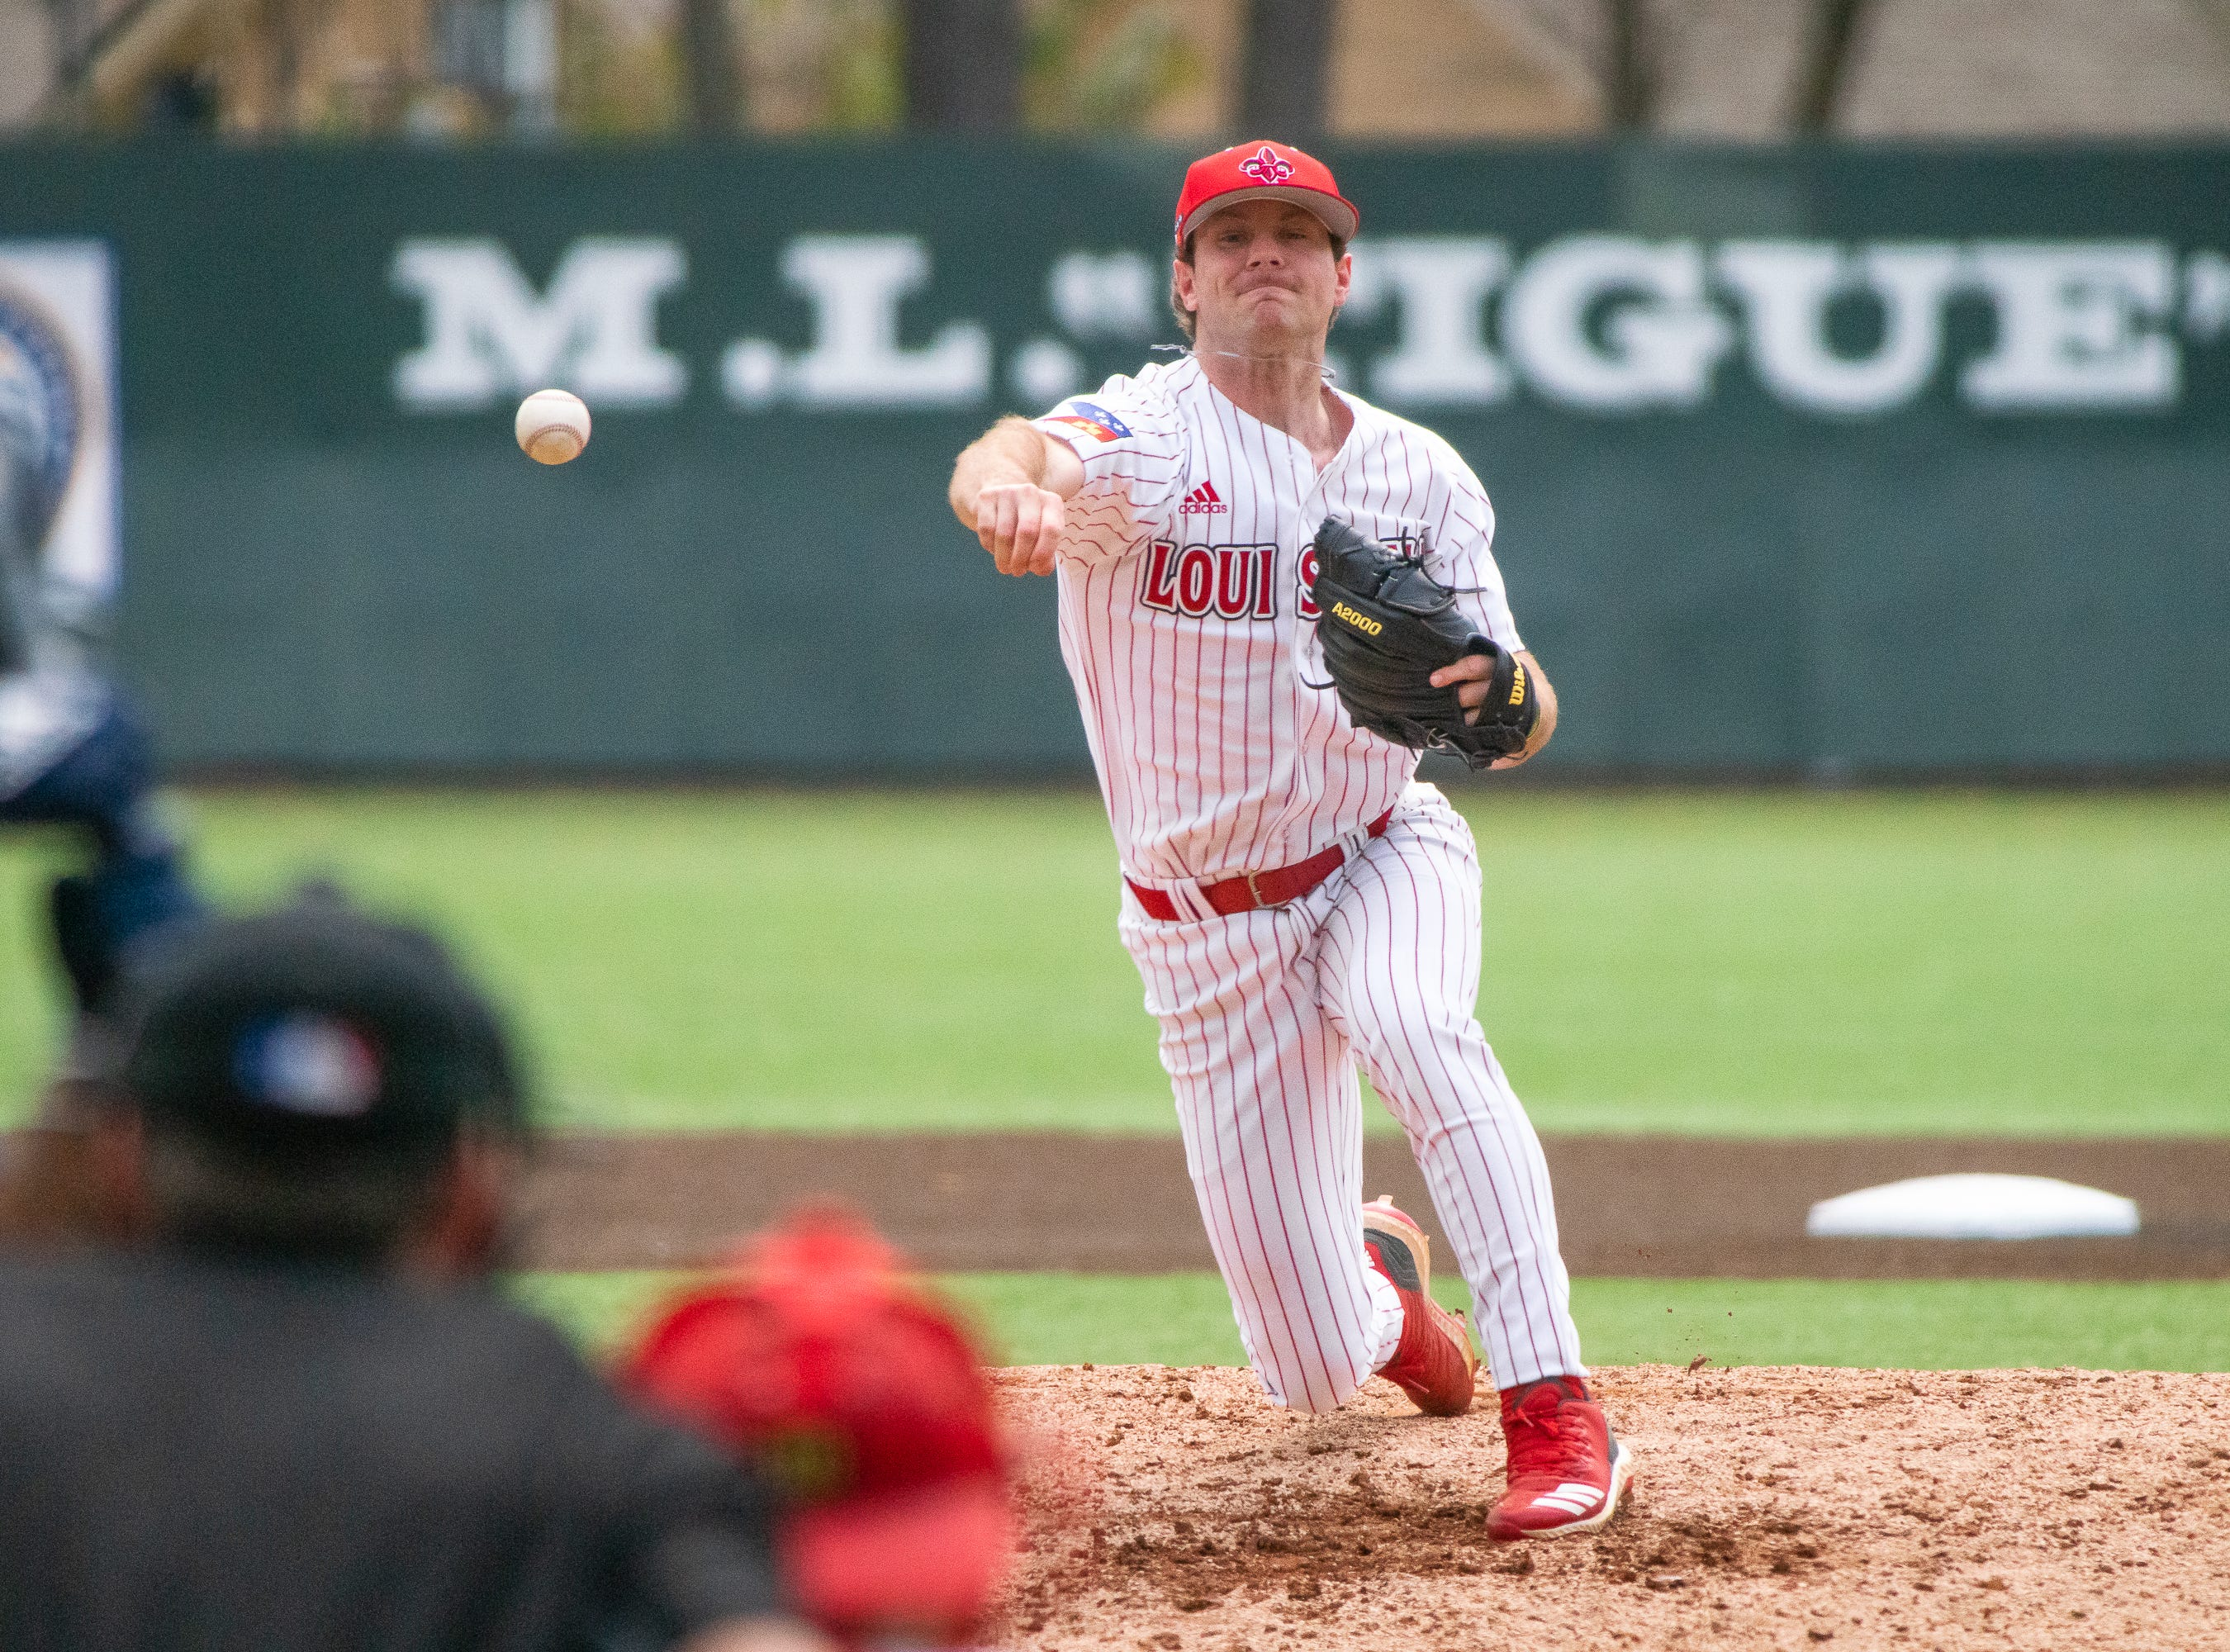 UL's Caleb Armstrong throws a pitch to the plate as the Ragin' Cajuns take on the Loyola Marymount Lions at M.L. Tigue Moore Field on March 10, 2019.